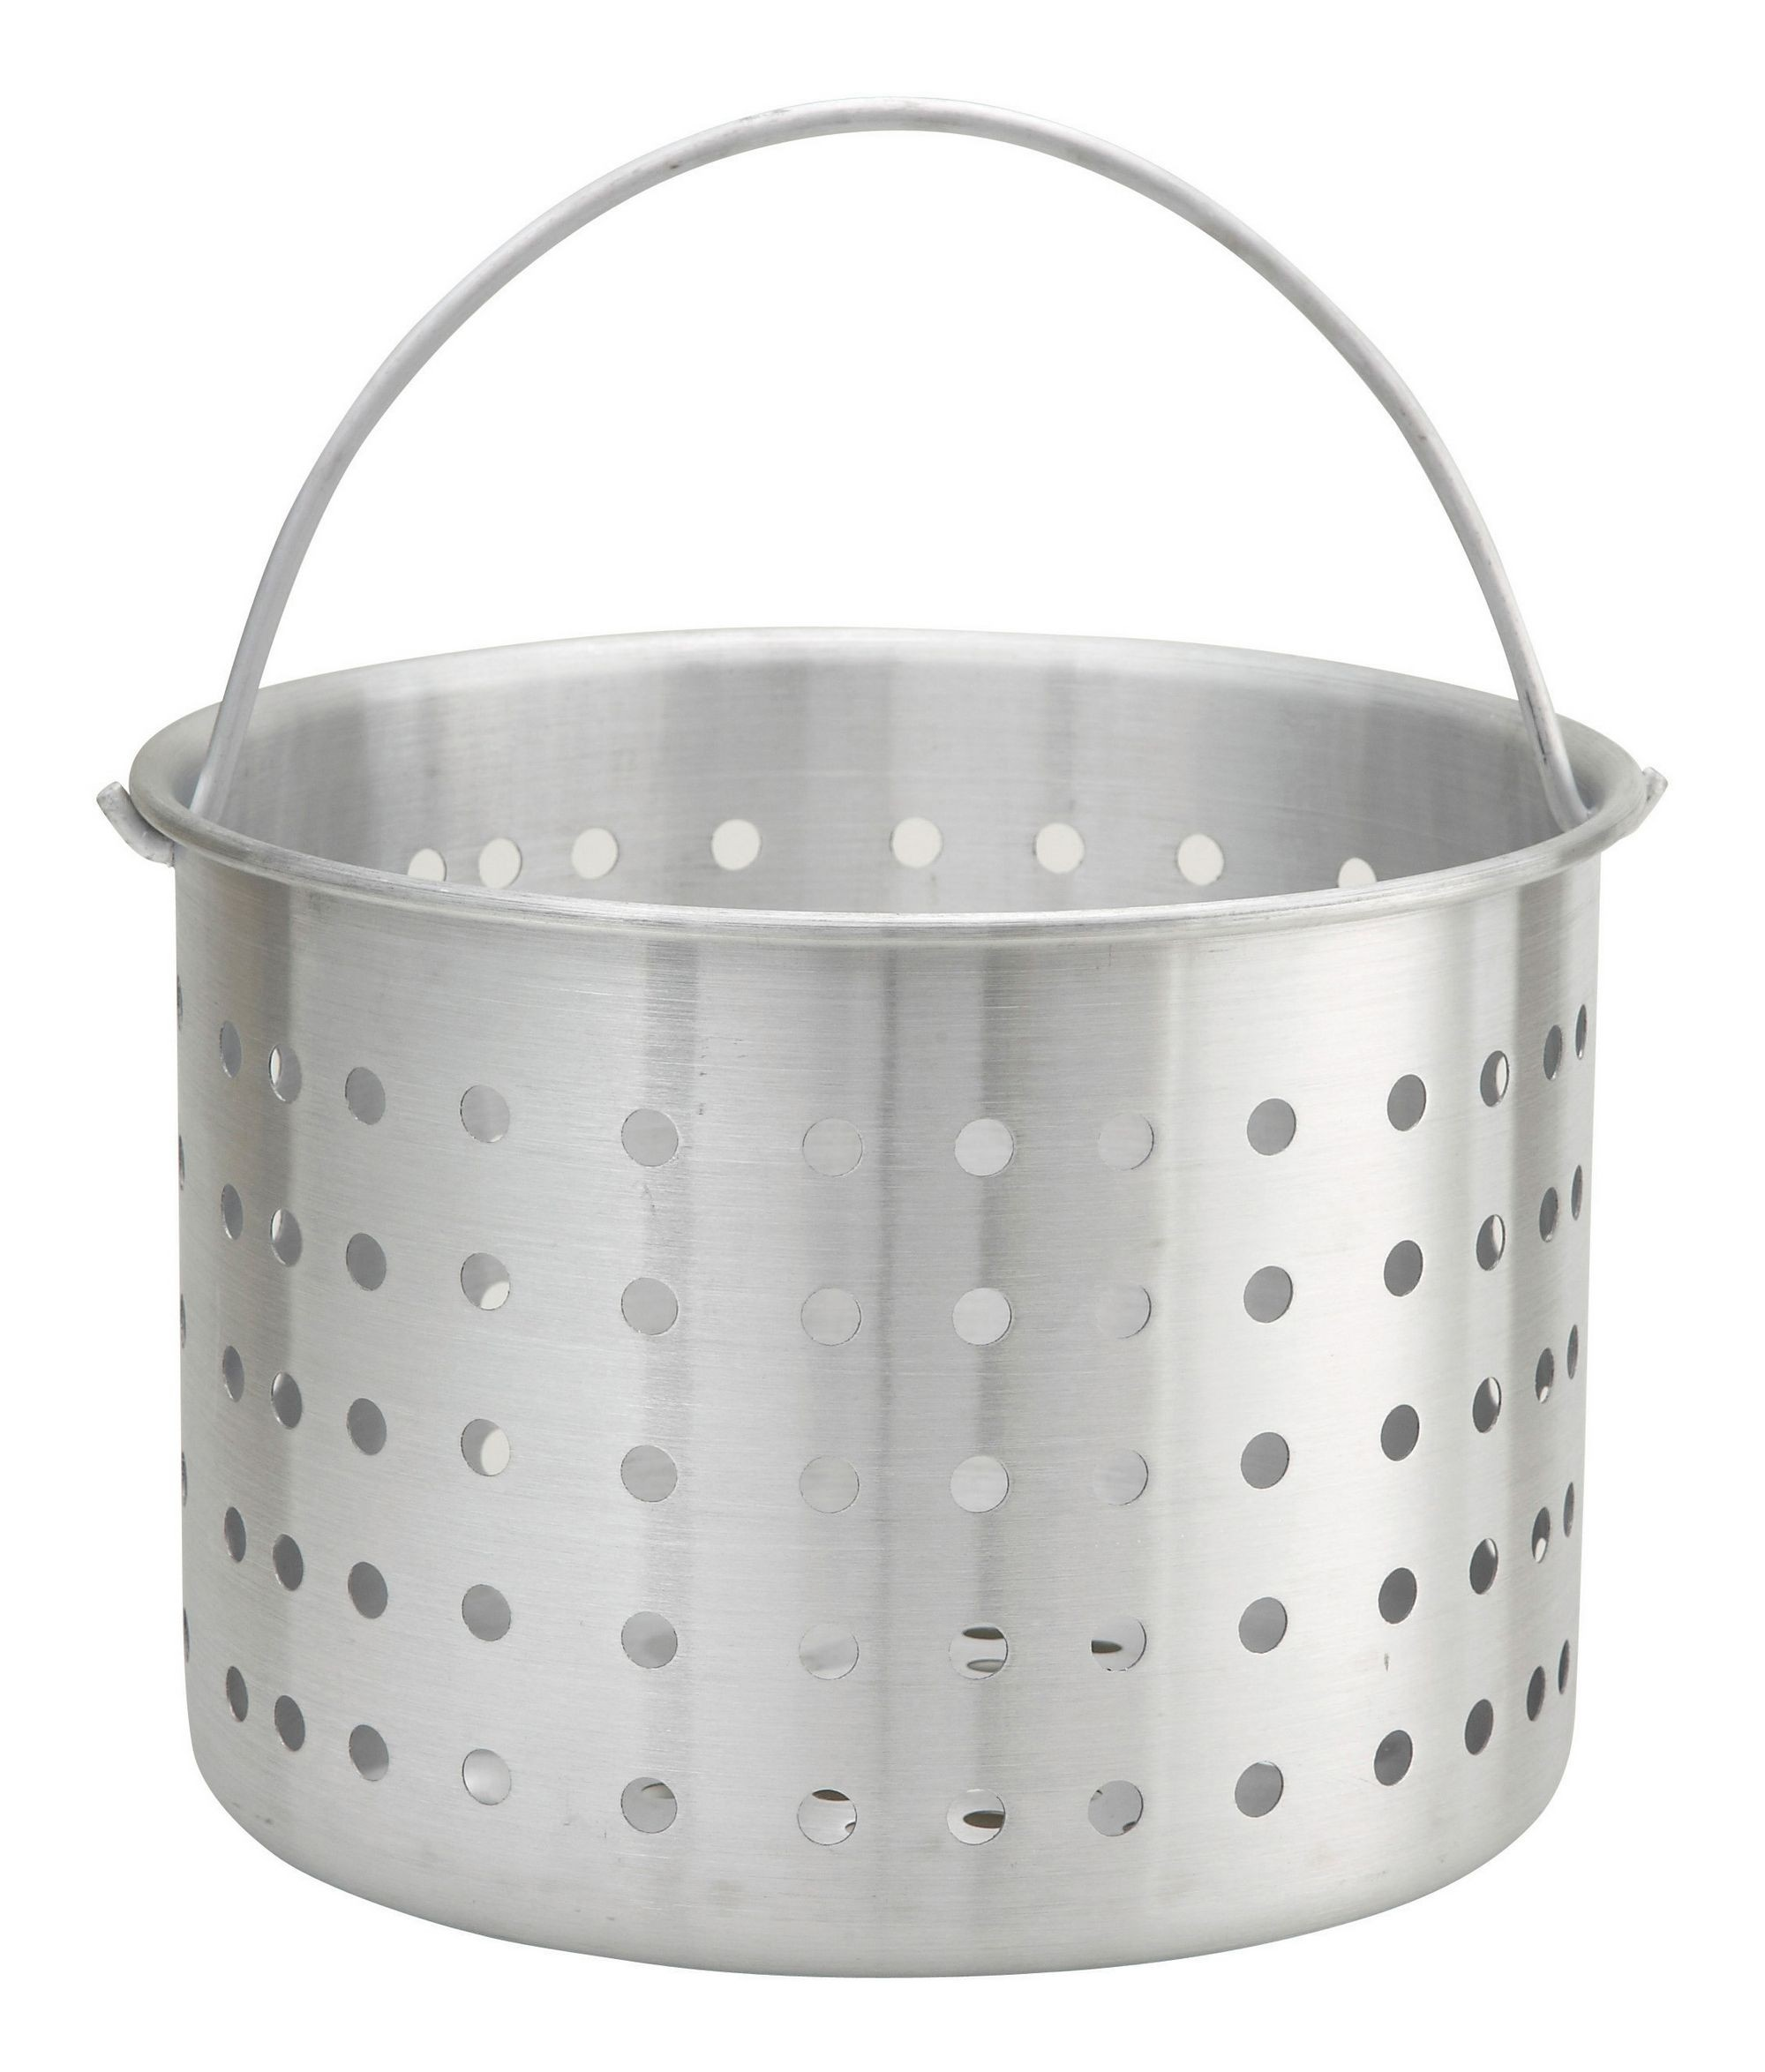 Win-Ware 20-Qt Aluminum Steamer Basket For ALST-20